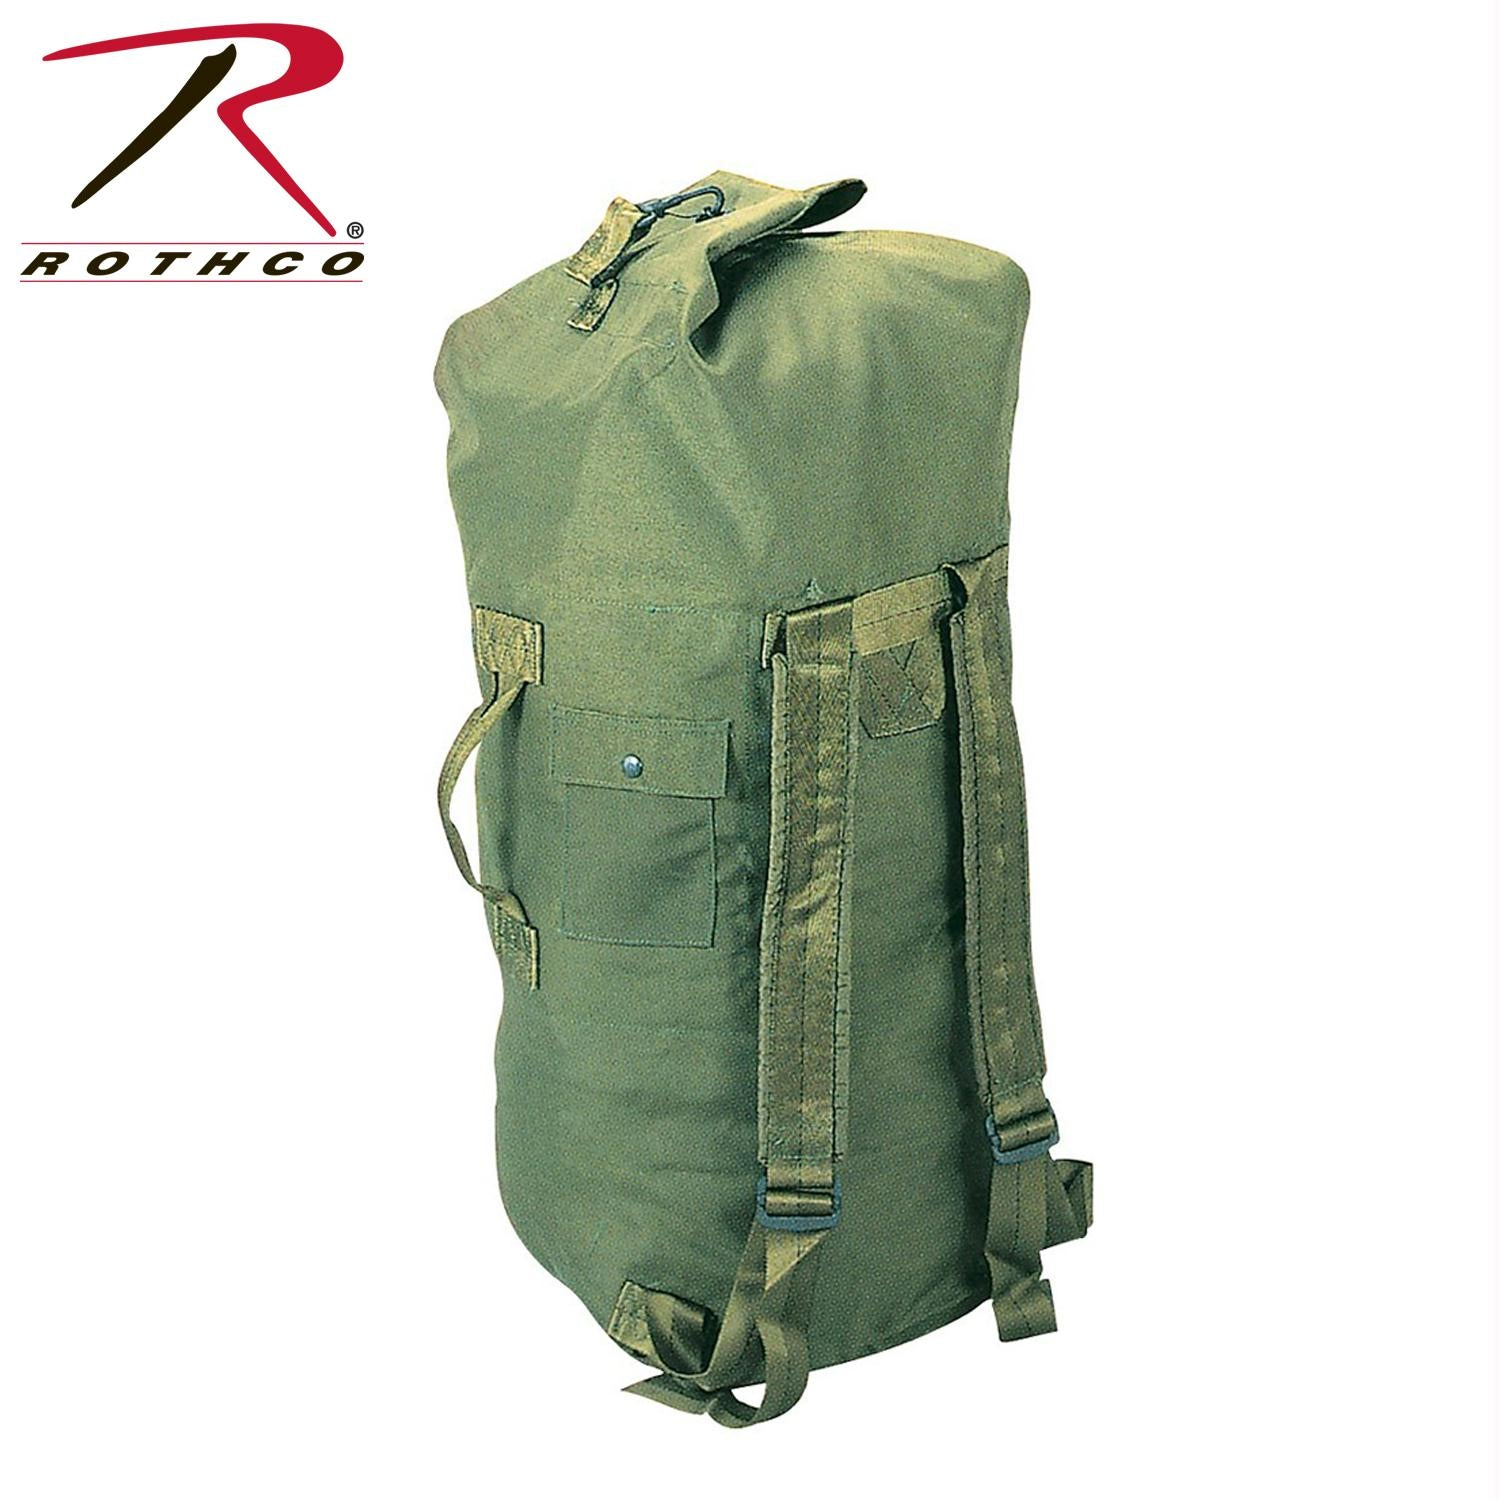 Rothco G.I. Type Enhanced Double Strap Duffle Bag - Olive Drab